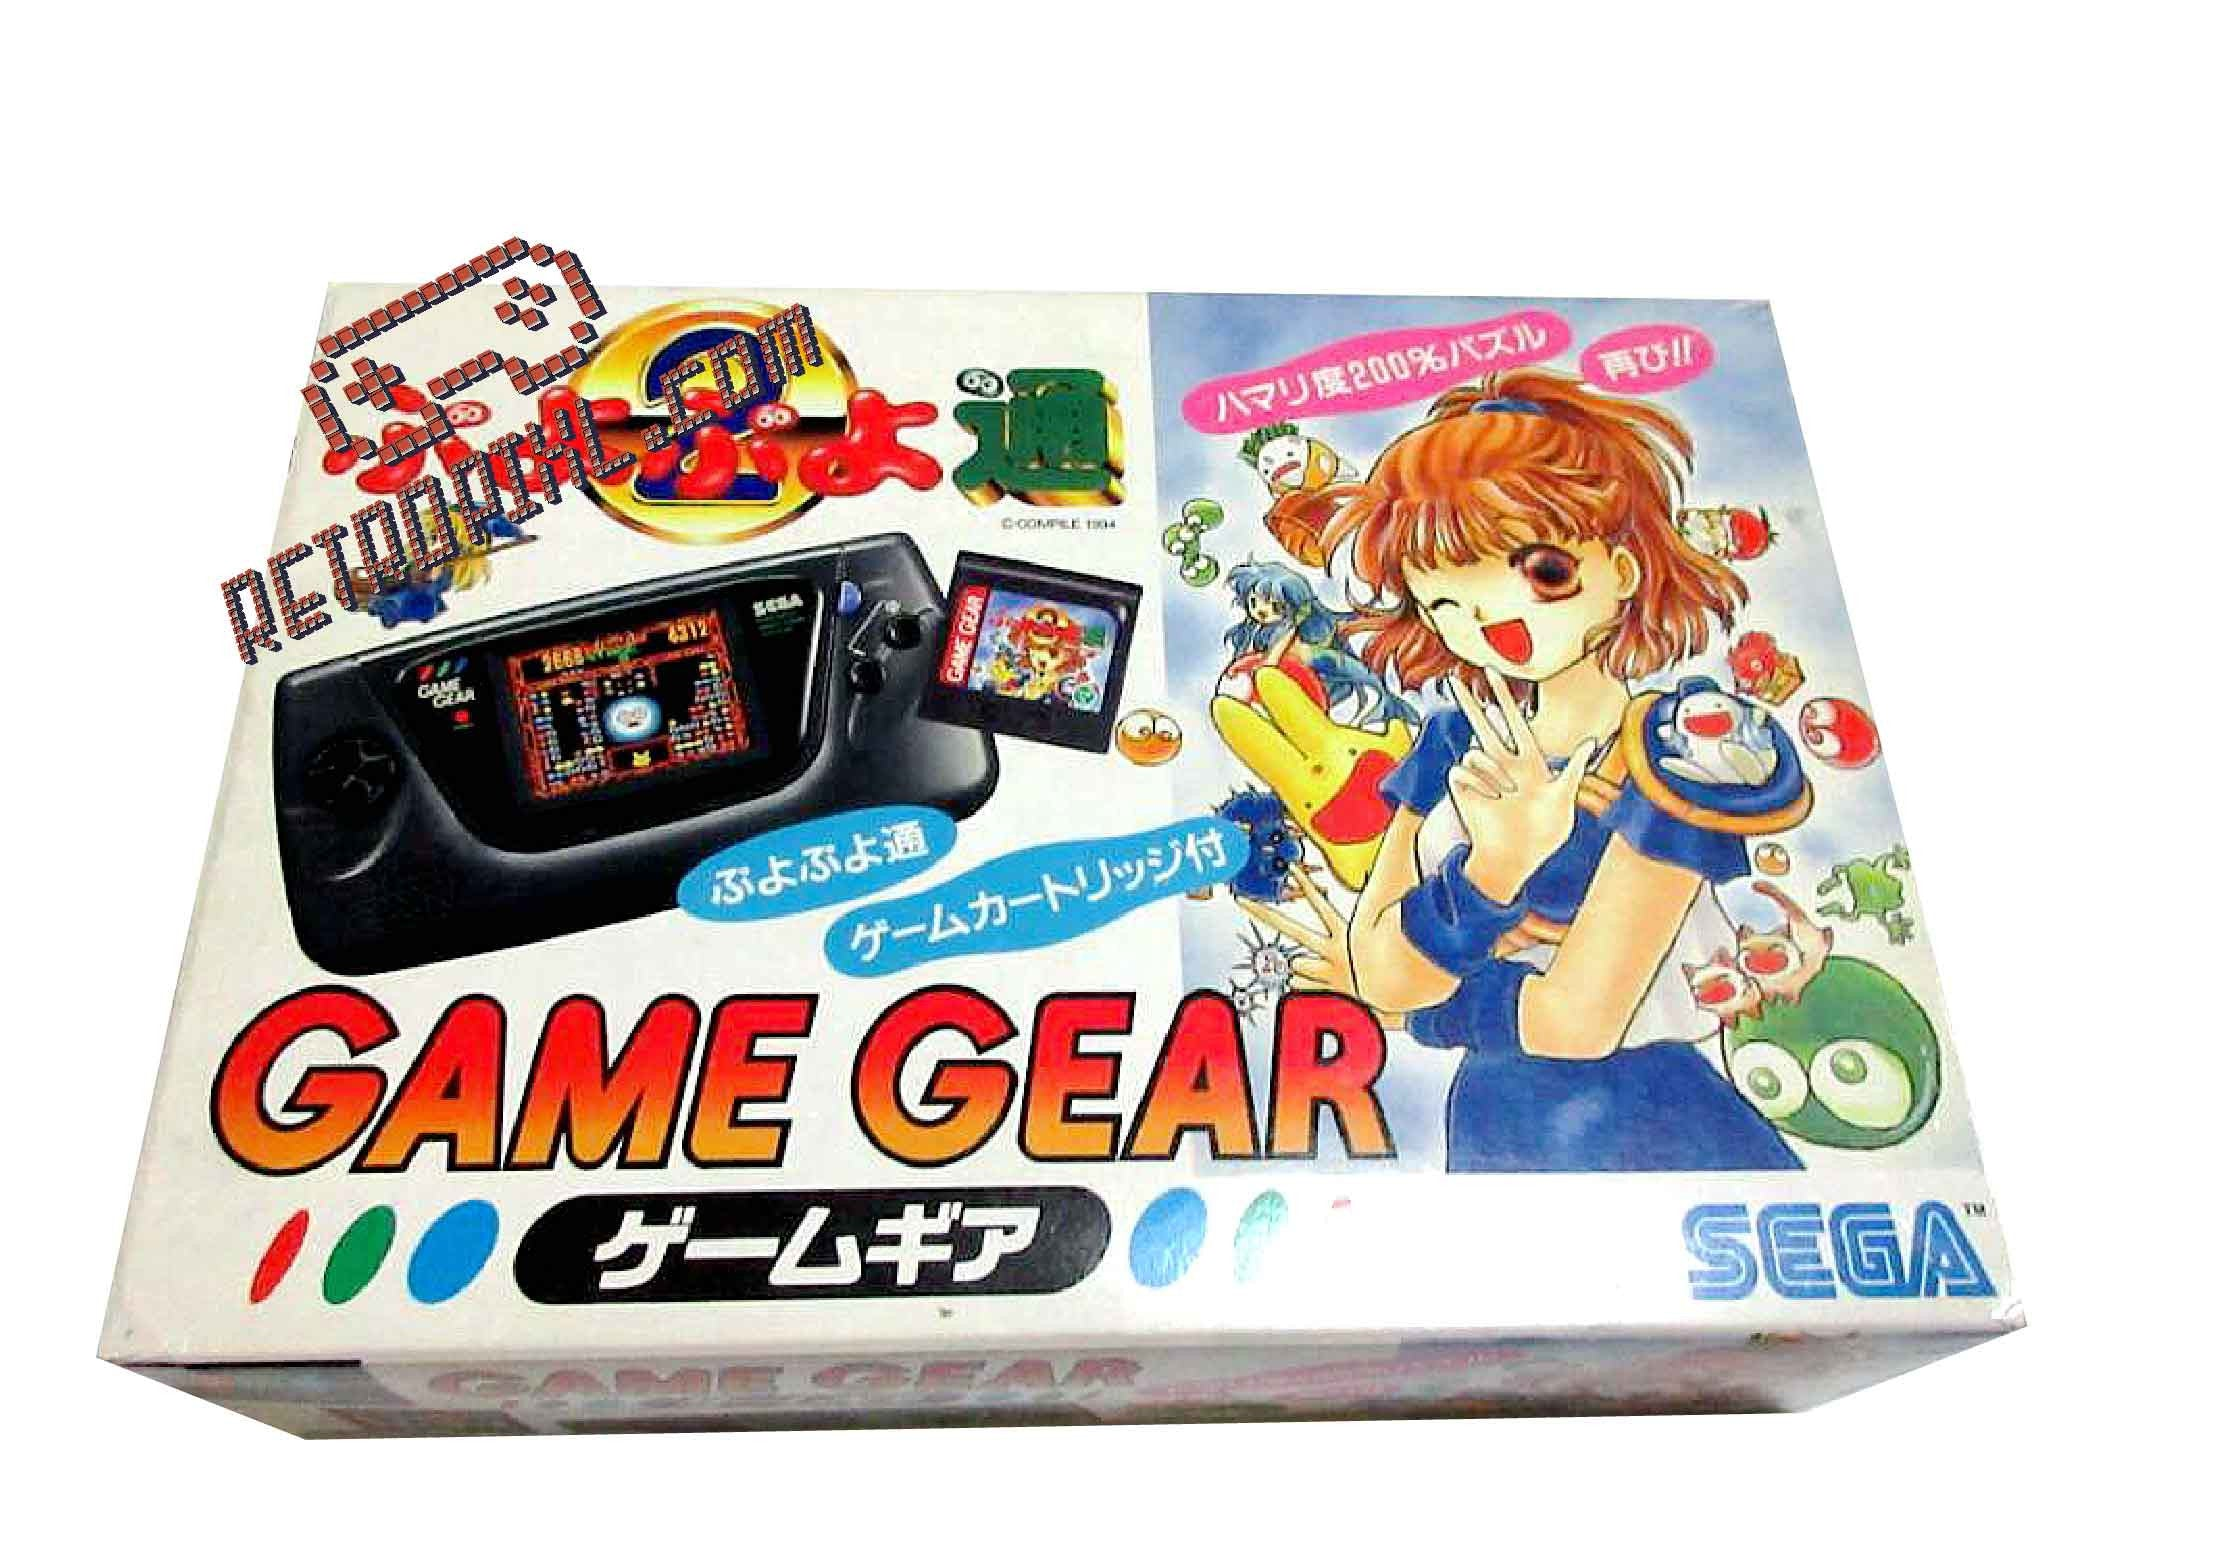 Sega Game Gear Puyo Puyo Tsuu LIMITED EDITION